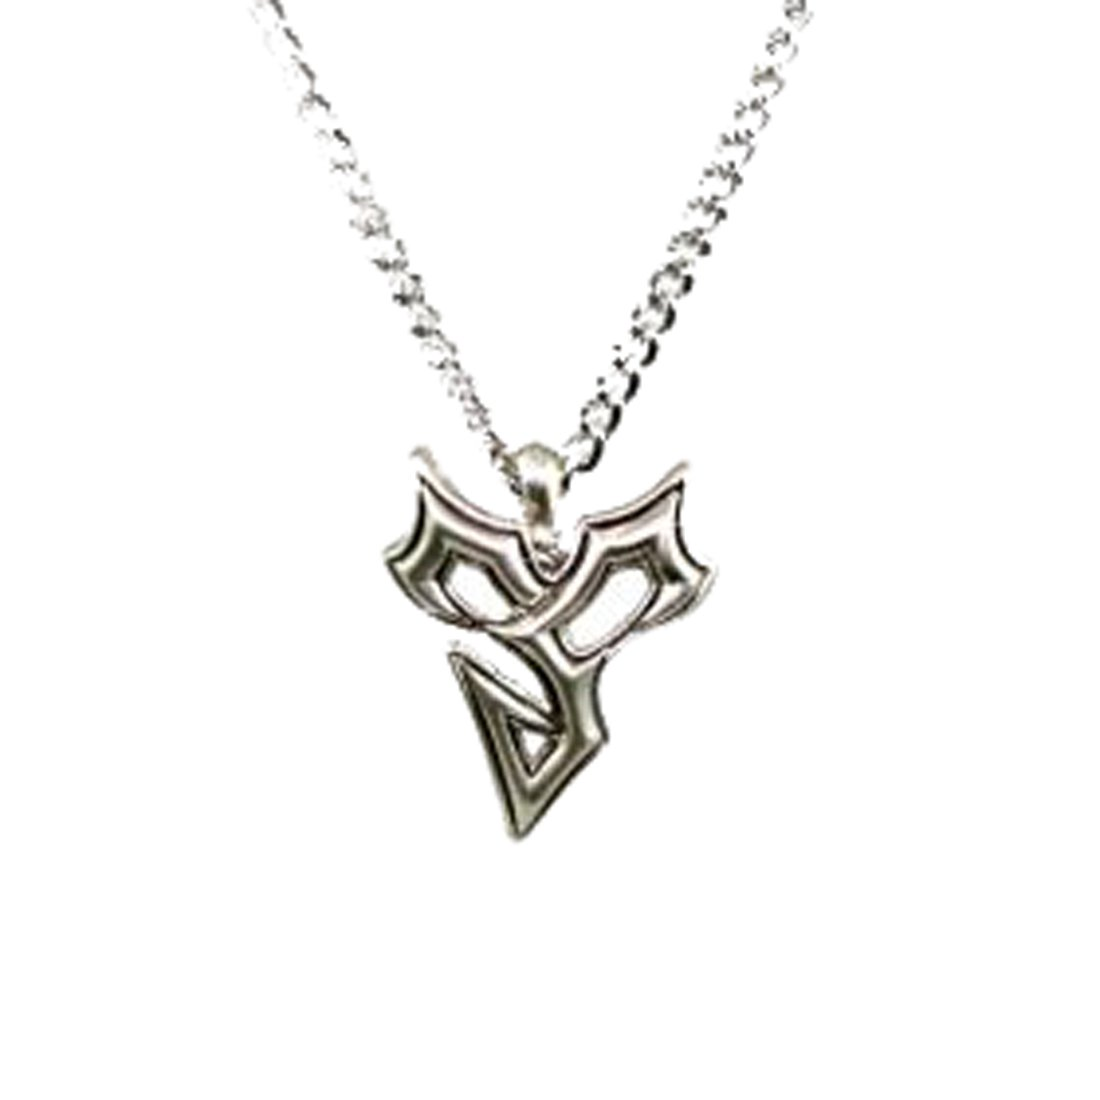 NEW Final Fantasy X 10 FF10 Pendant Metal Necklace Cosplay